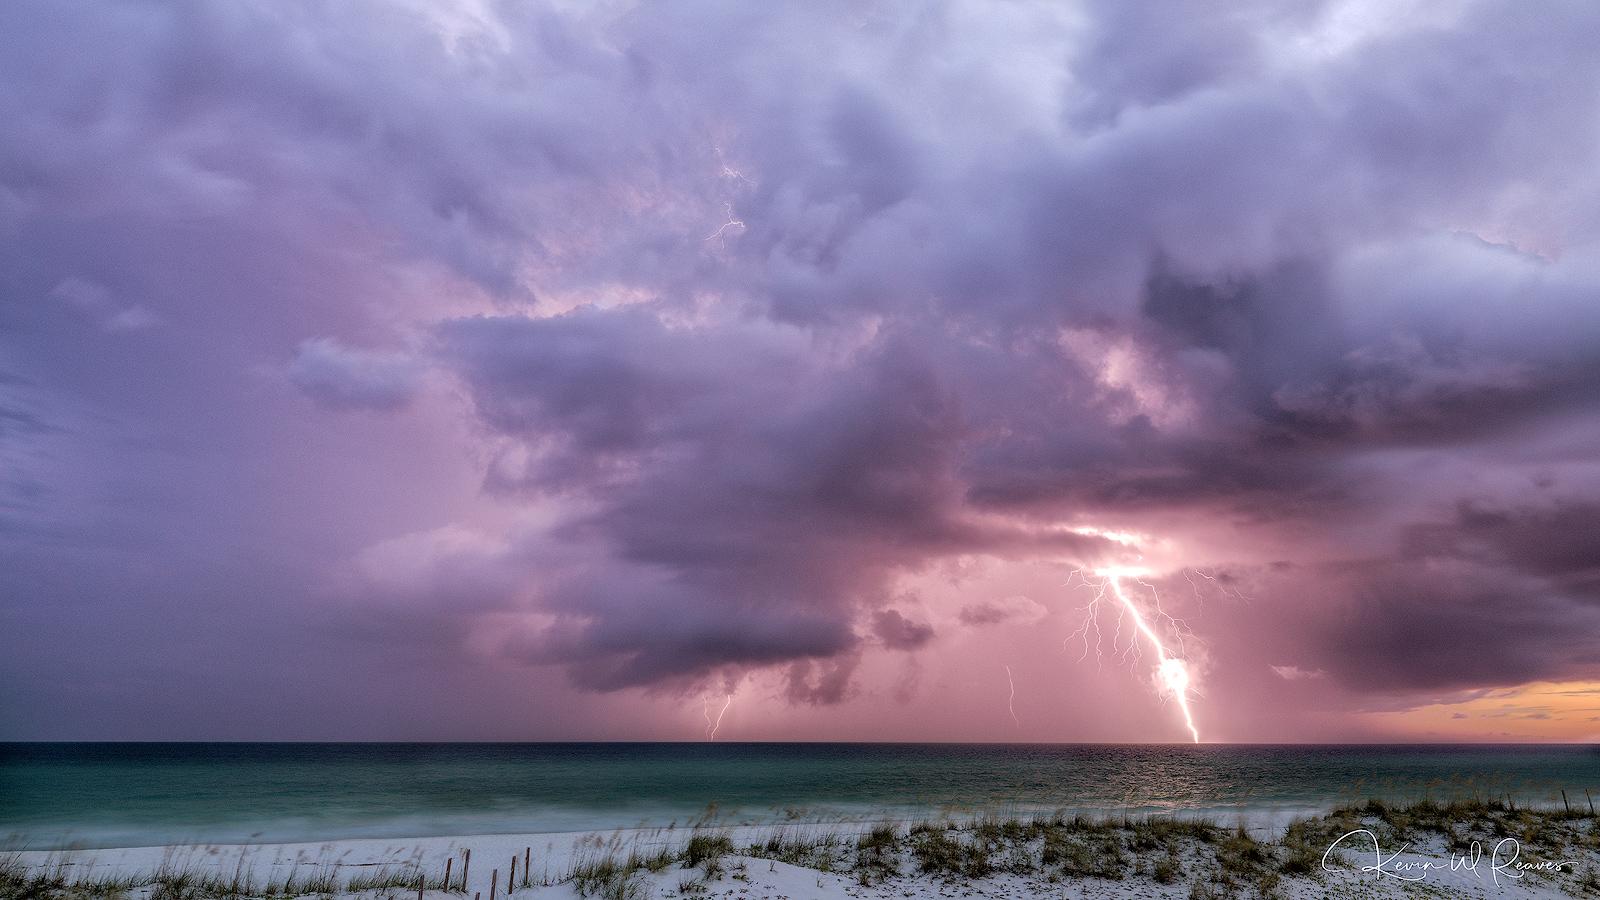 Upon our arrival on the first night of our vacation, an intense lightning storm appeared out of nowhere and put on a show just...